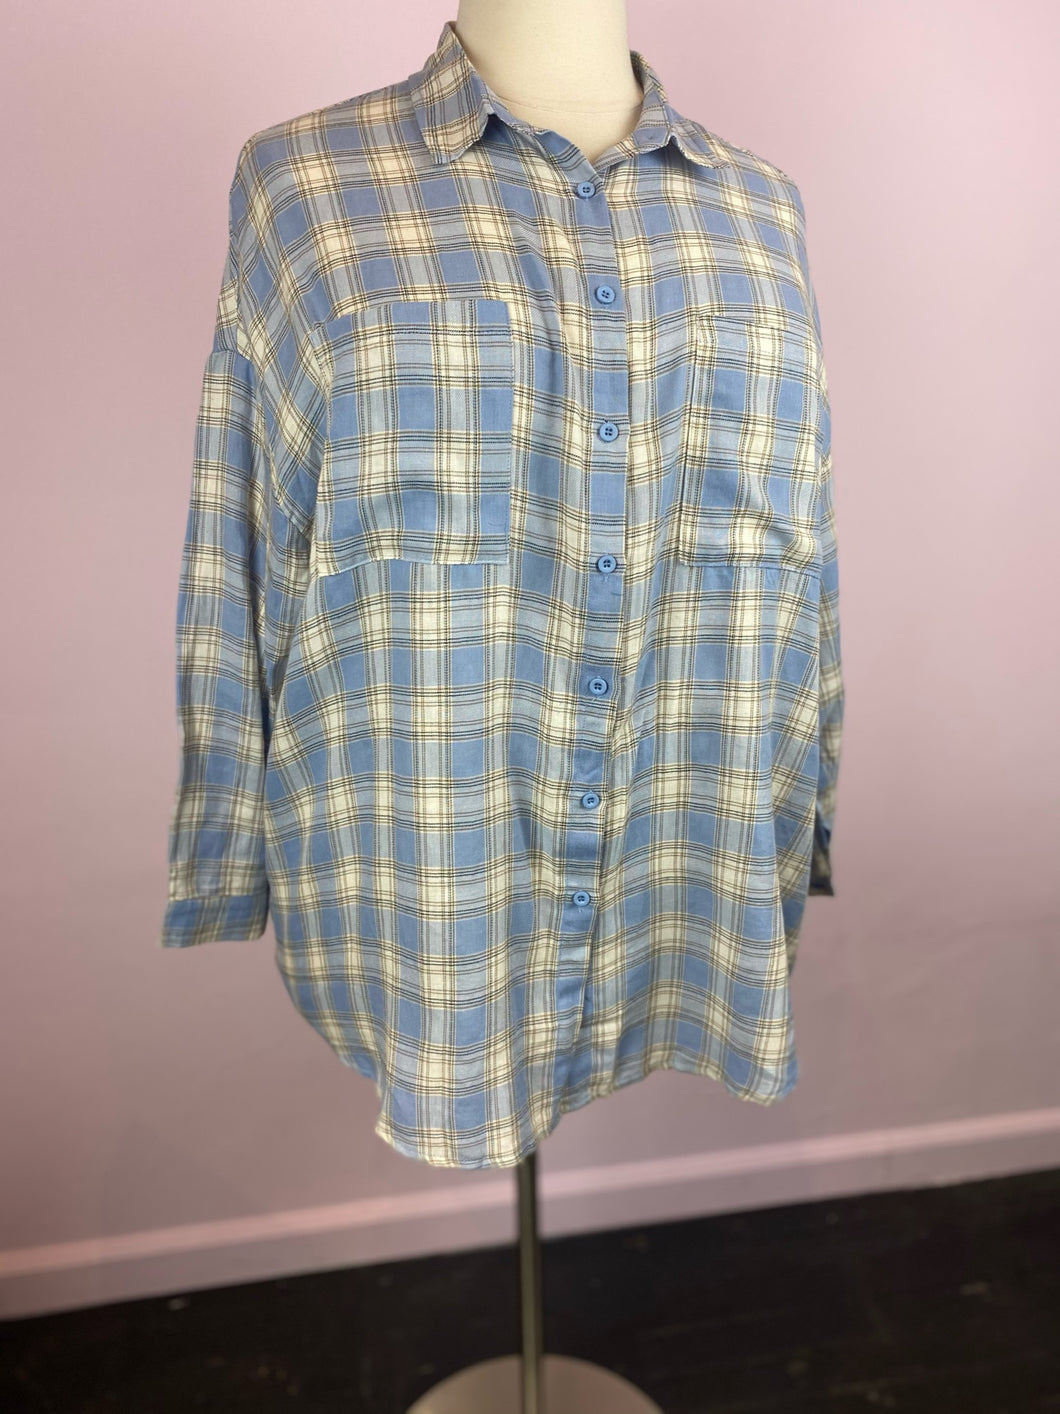 Oversized Blue & White Checkered Button Up, Boohoo Size 14